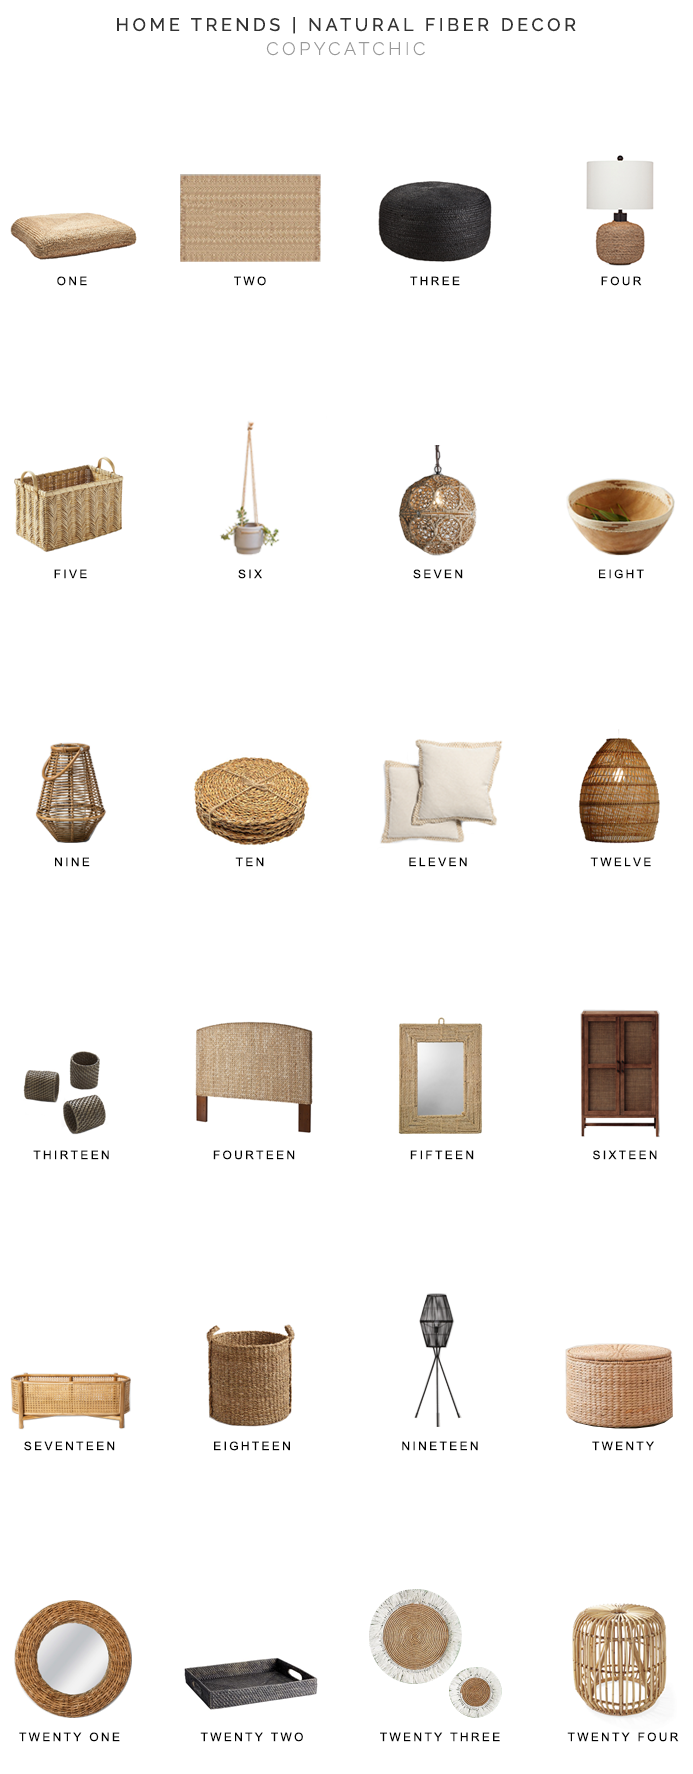 natural fiber decor for less, jute decor for less, sisal decor for less, bamboo decor for less, seagrass decor for less, rattan decor for less, cane decor for less, copycatchic luxe living for less, budget home decor and design, daily finds, home trends, sales, budget travel and room redos